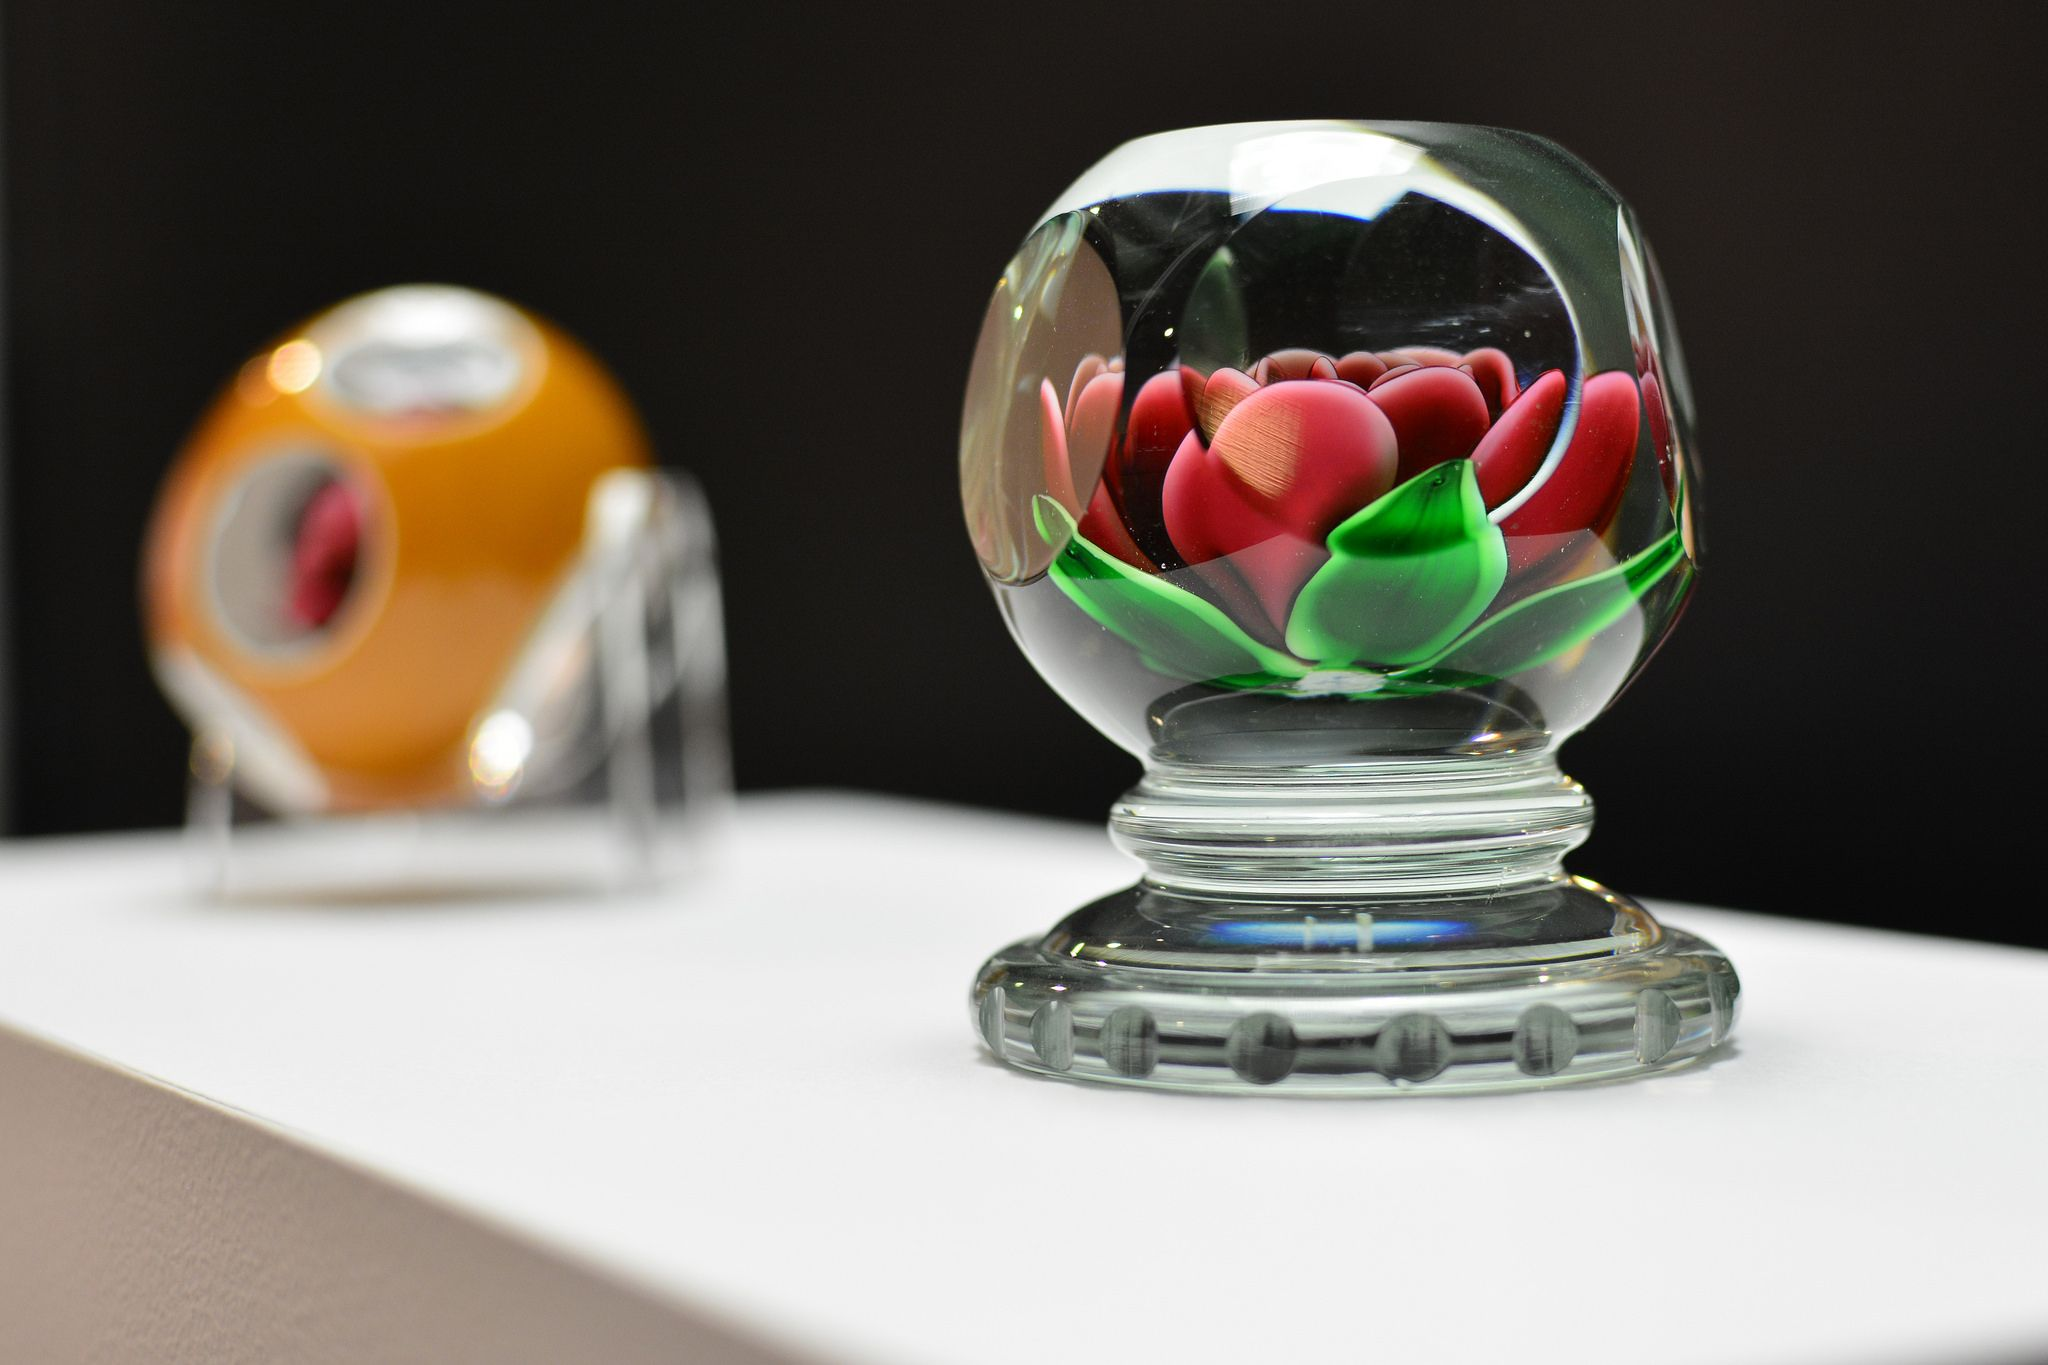 https://flic.kr/p/nYovRA | Glass Paperweights | from an exhibit at the National Liberty Museum in Philadelphia